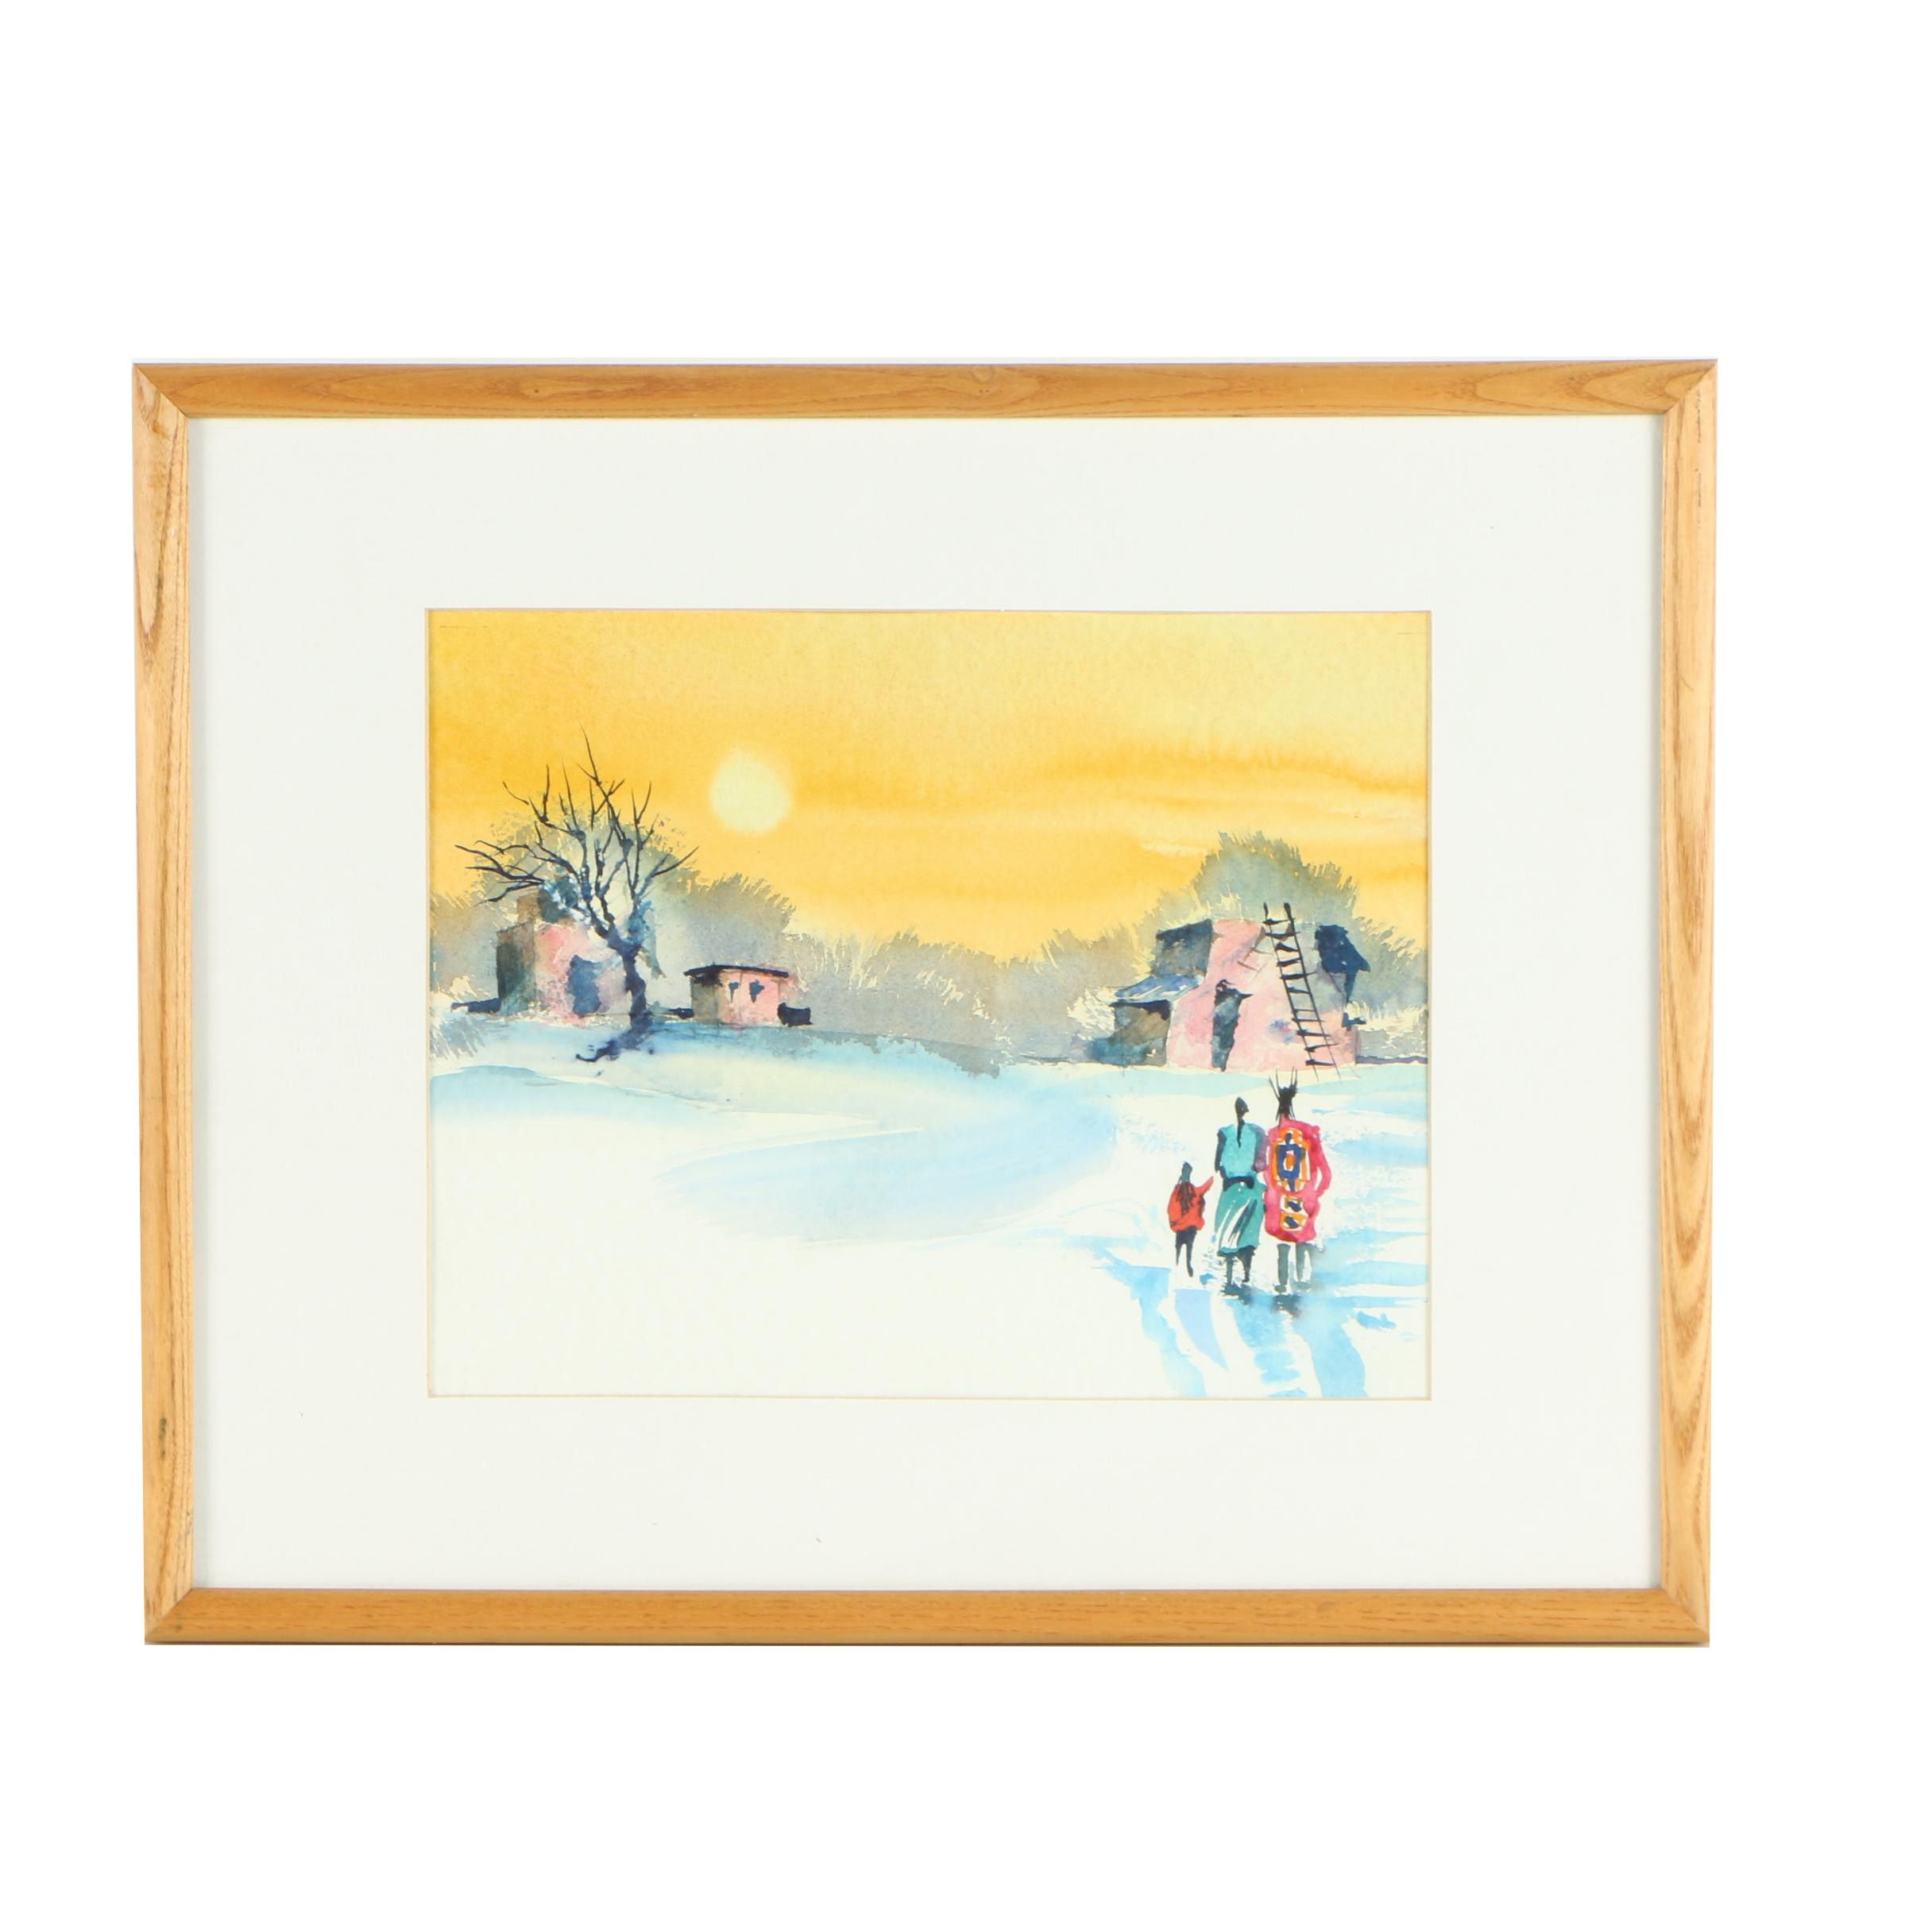 Watercolor Painting of Figures in Southwestern Landscape